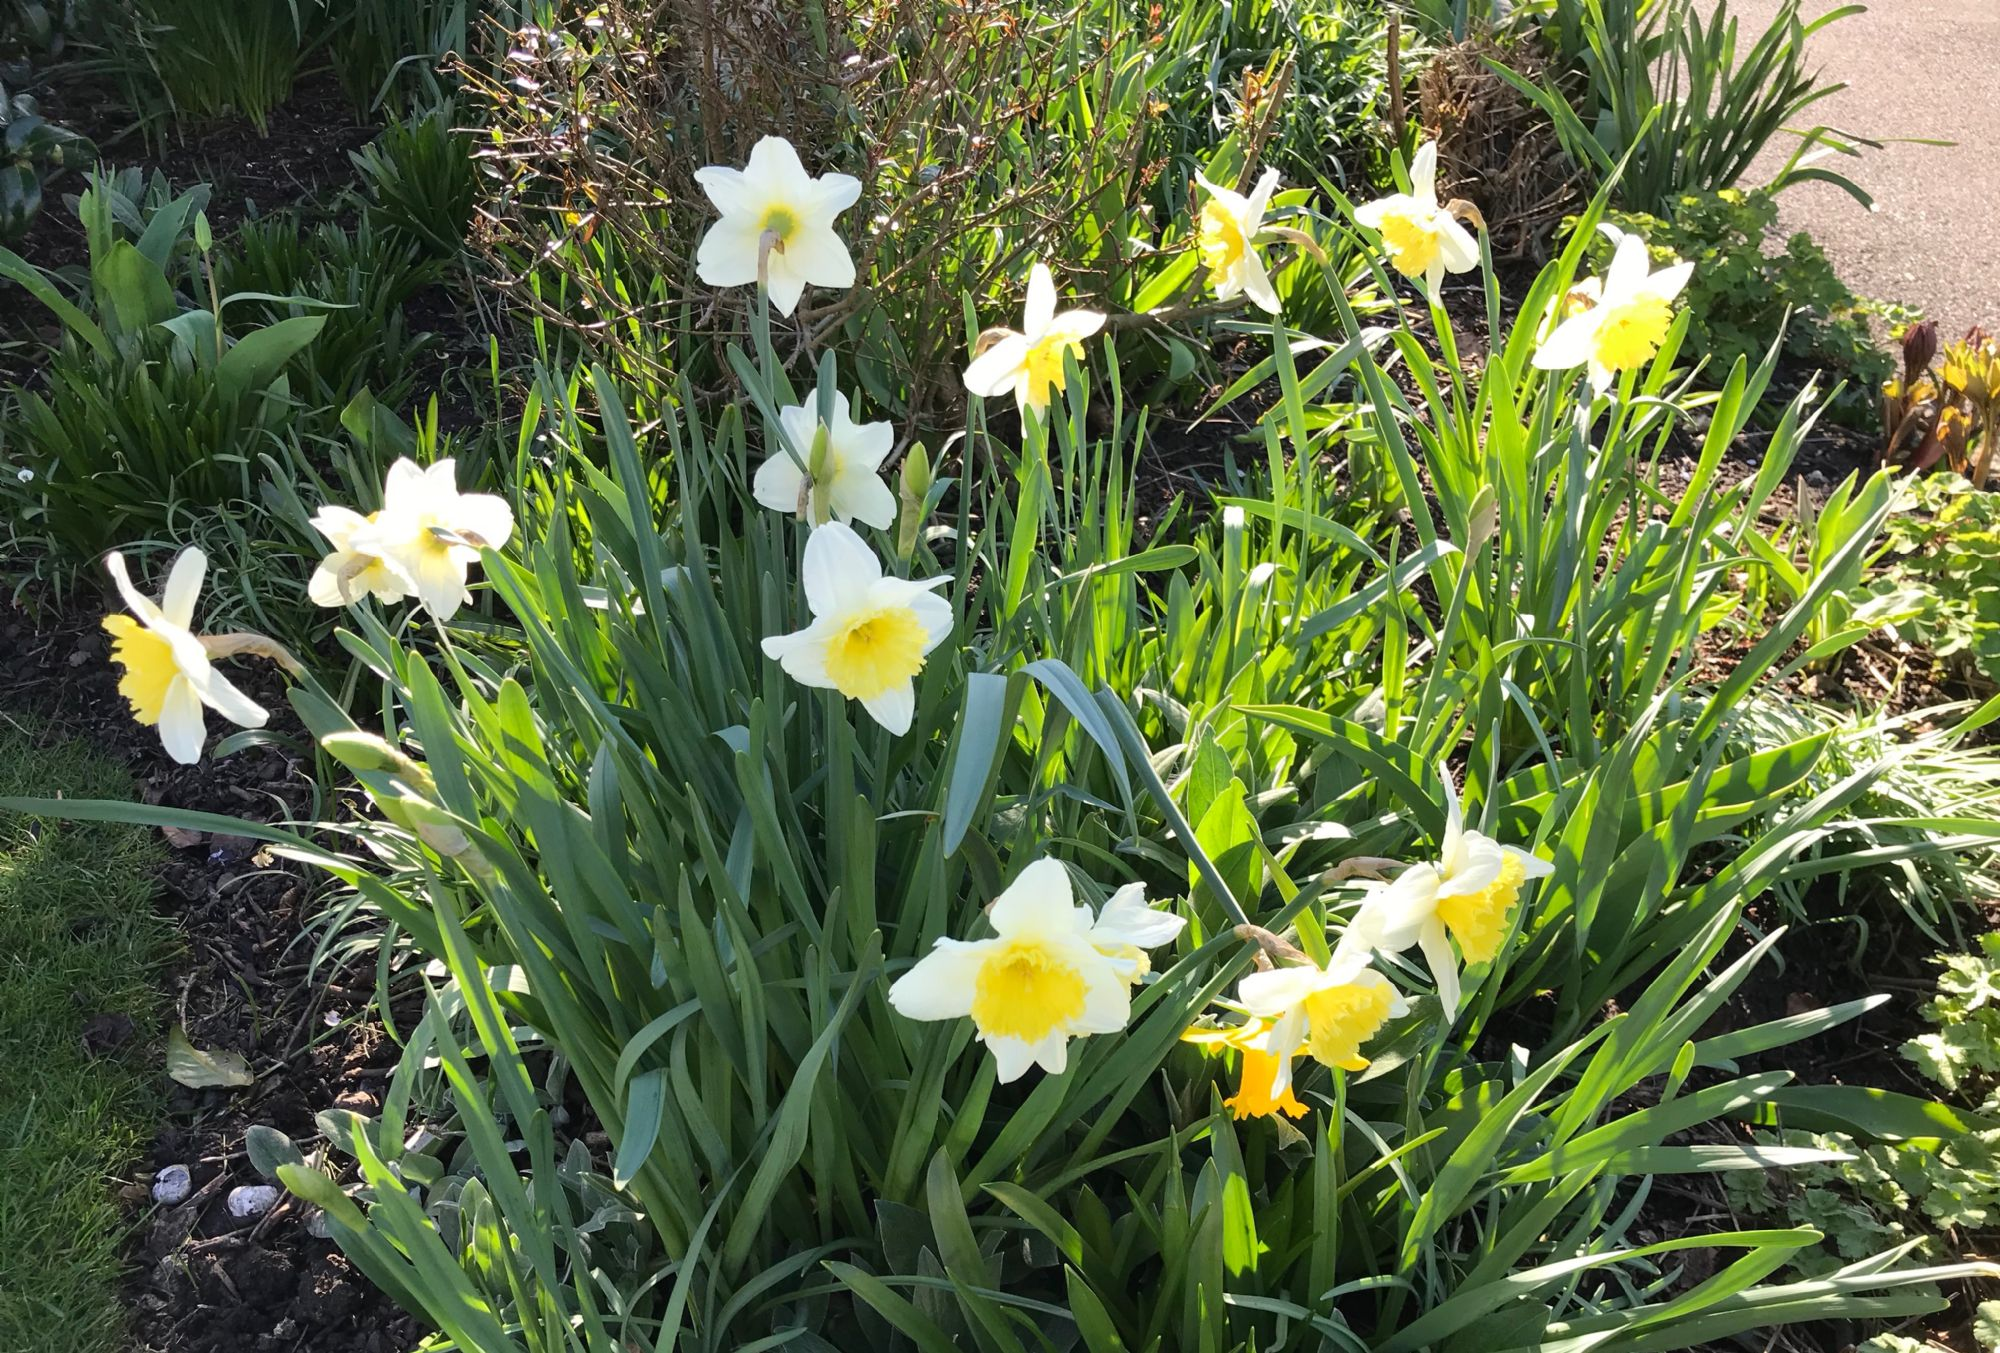 Daffodils for Easter Sunday